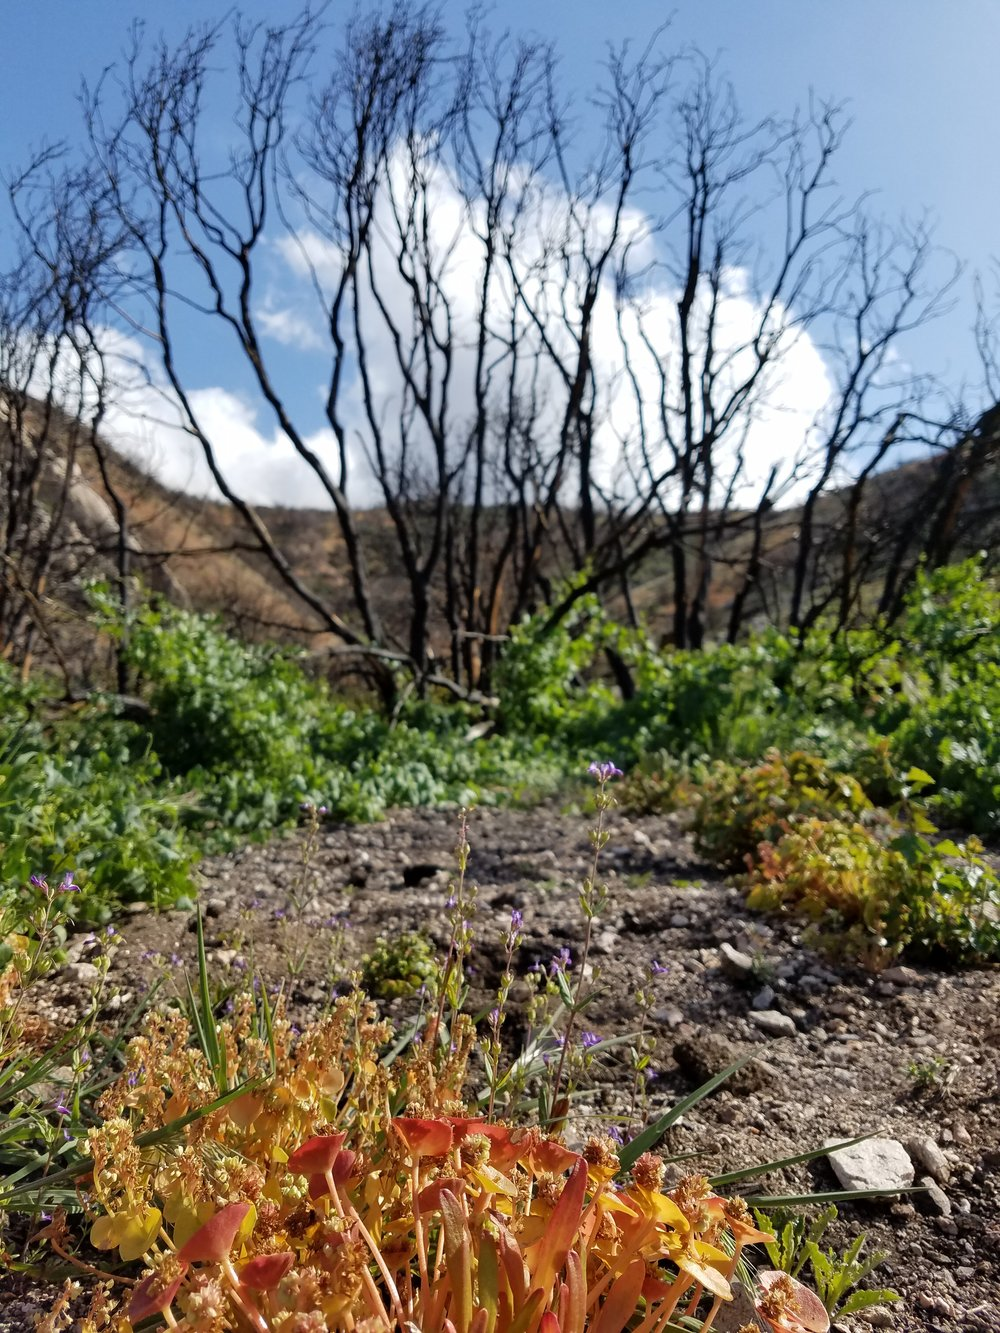 Burned section with TONS of edible miner's lettuce.